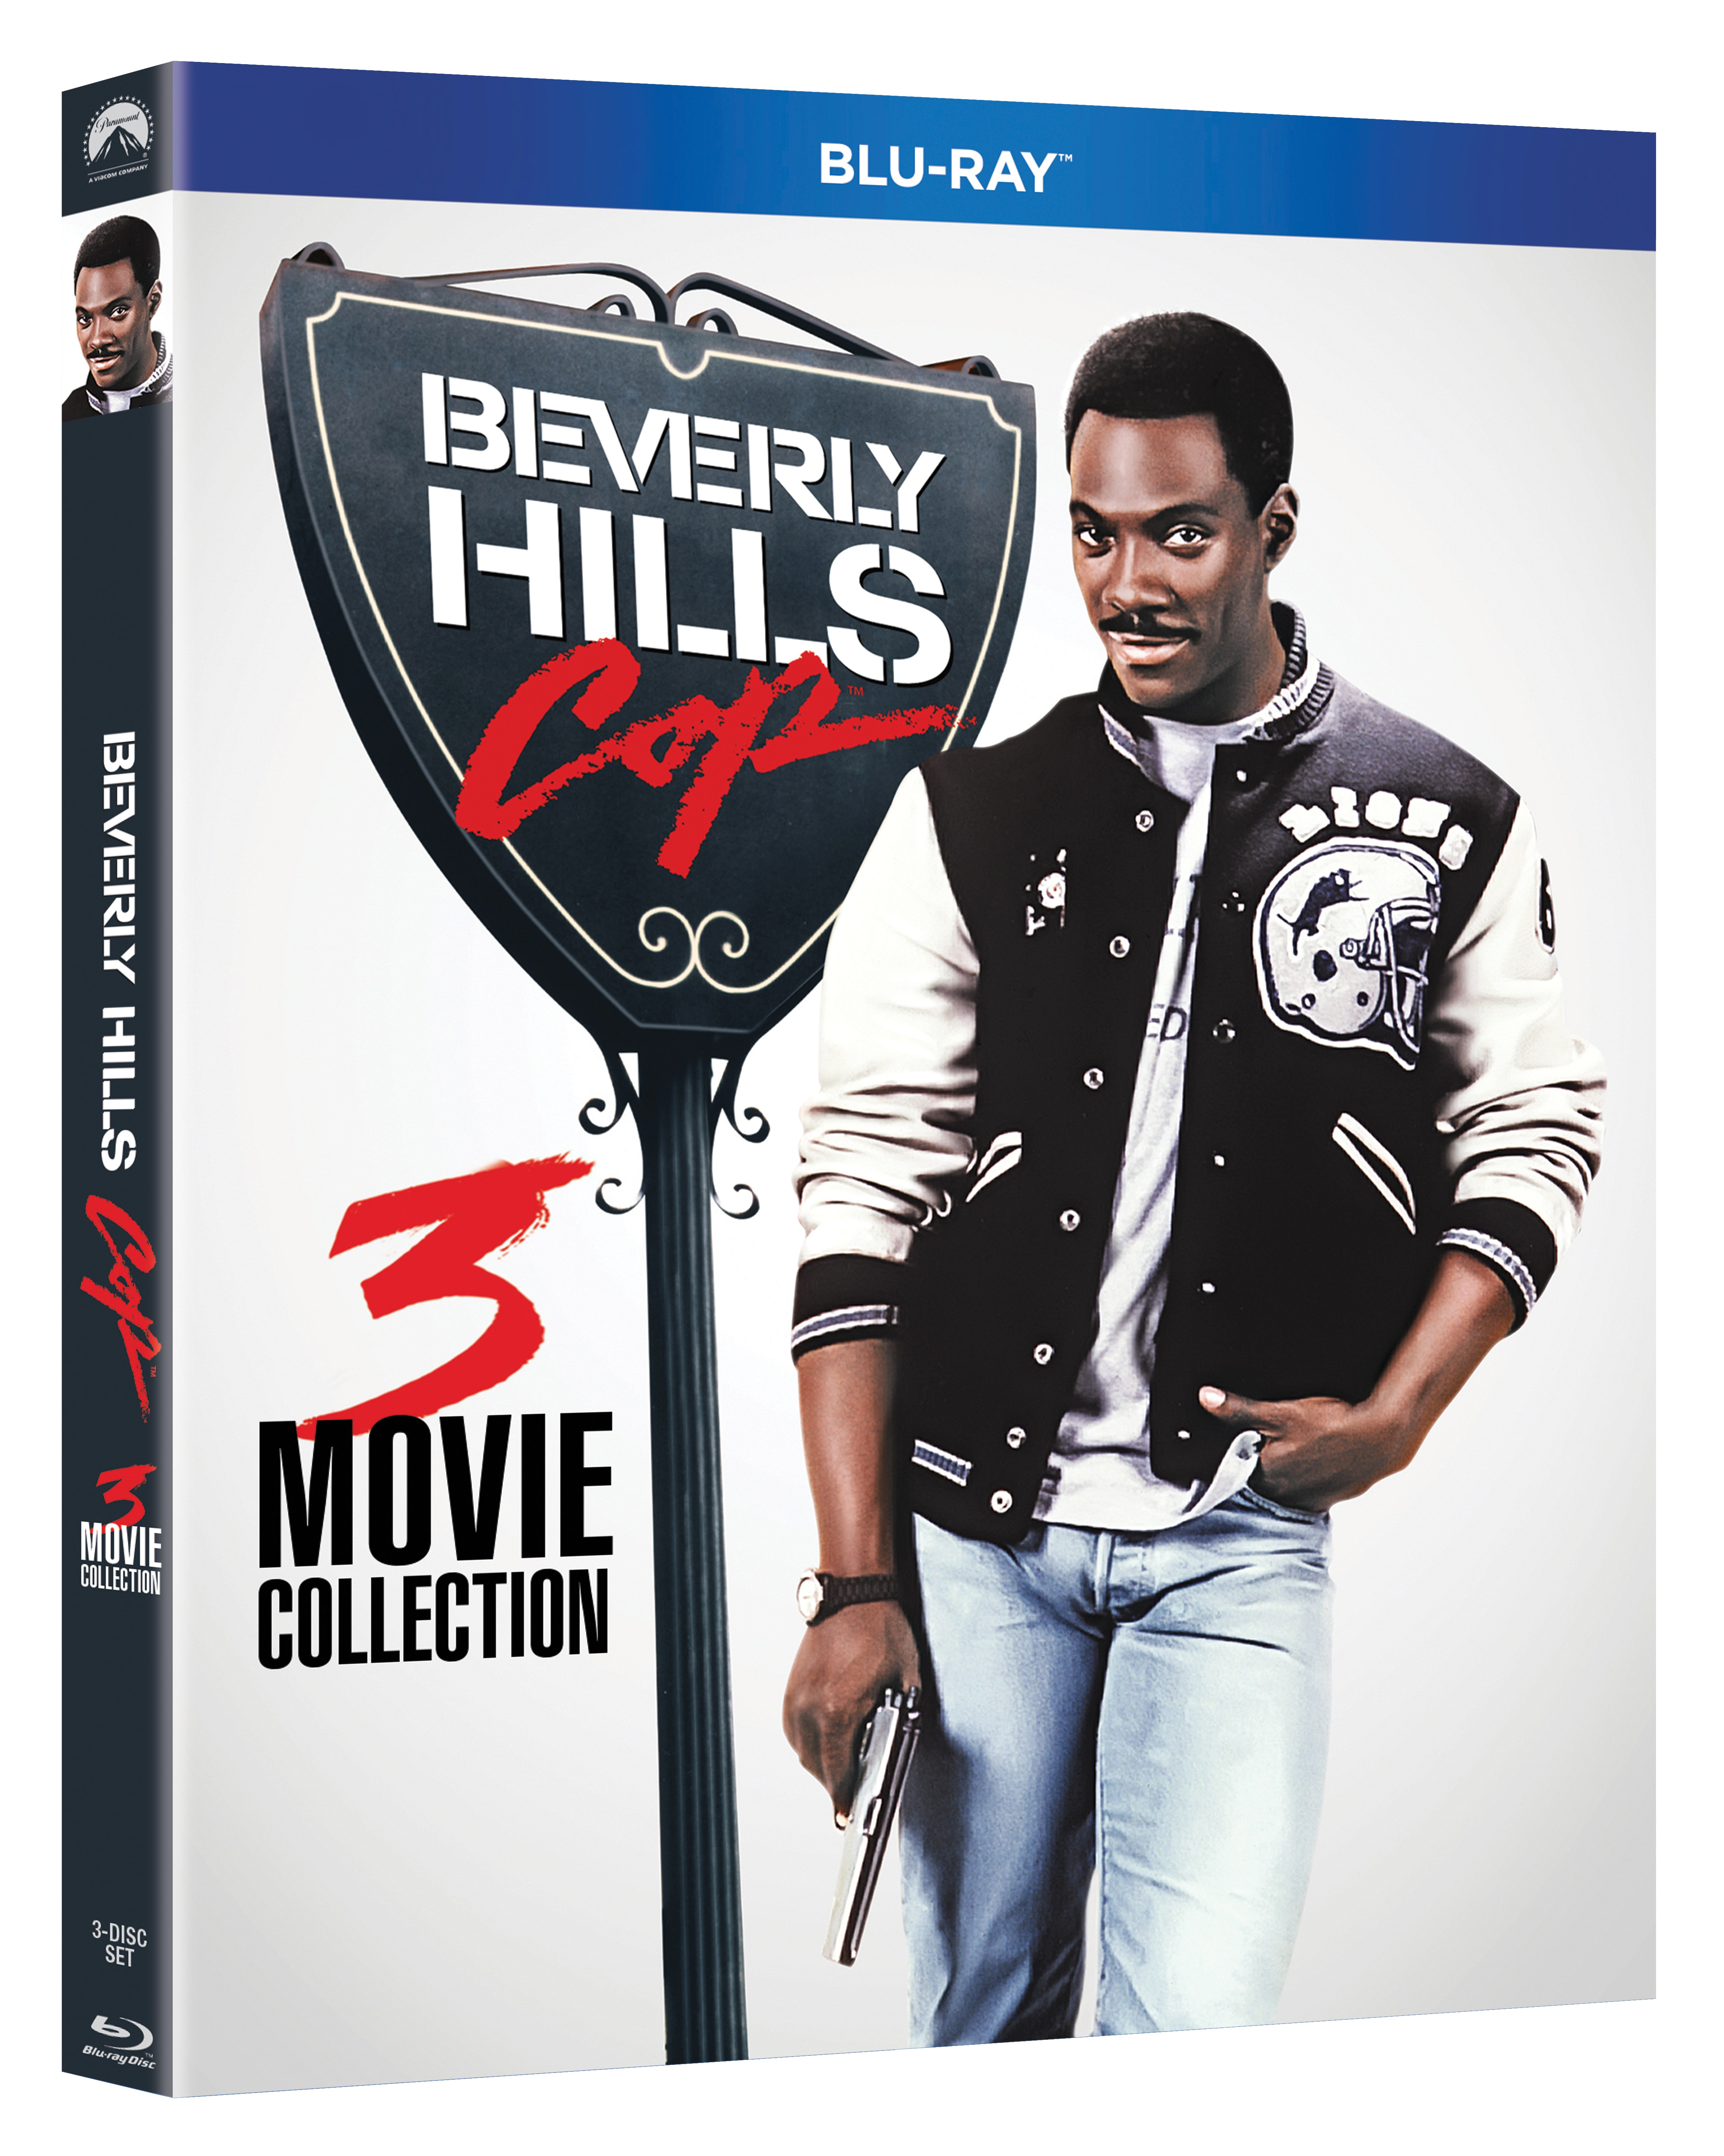 beverly-hills-cop-collection in hollywood Blu-ray